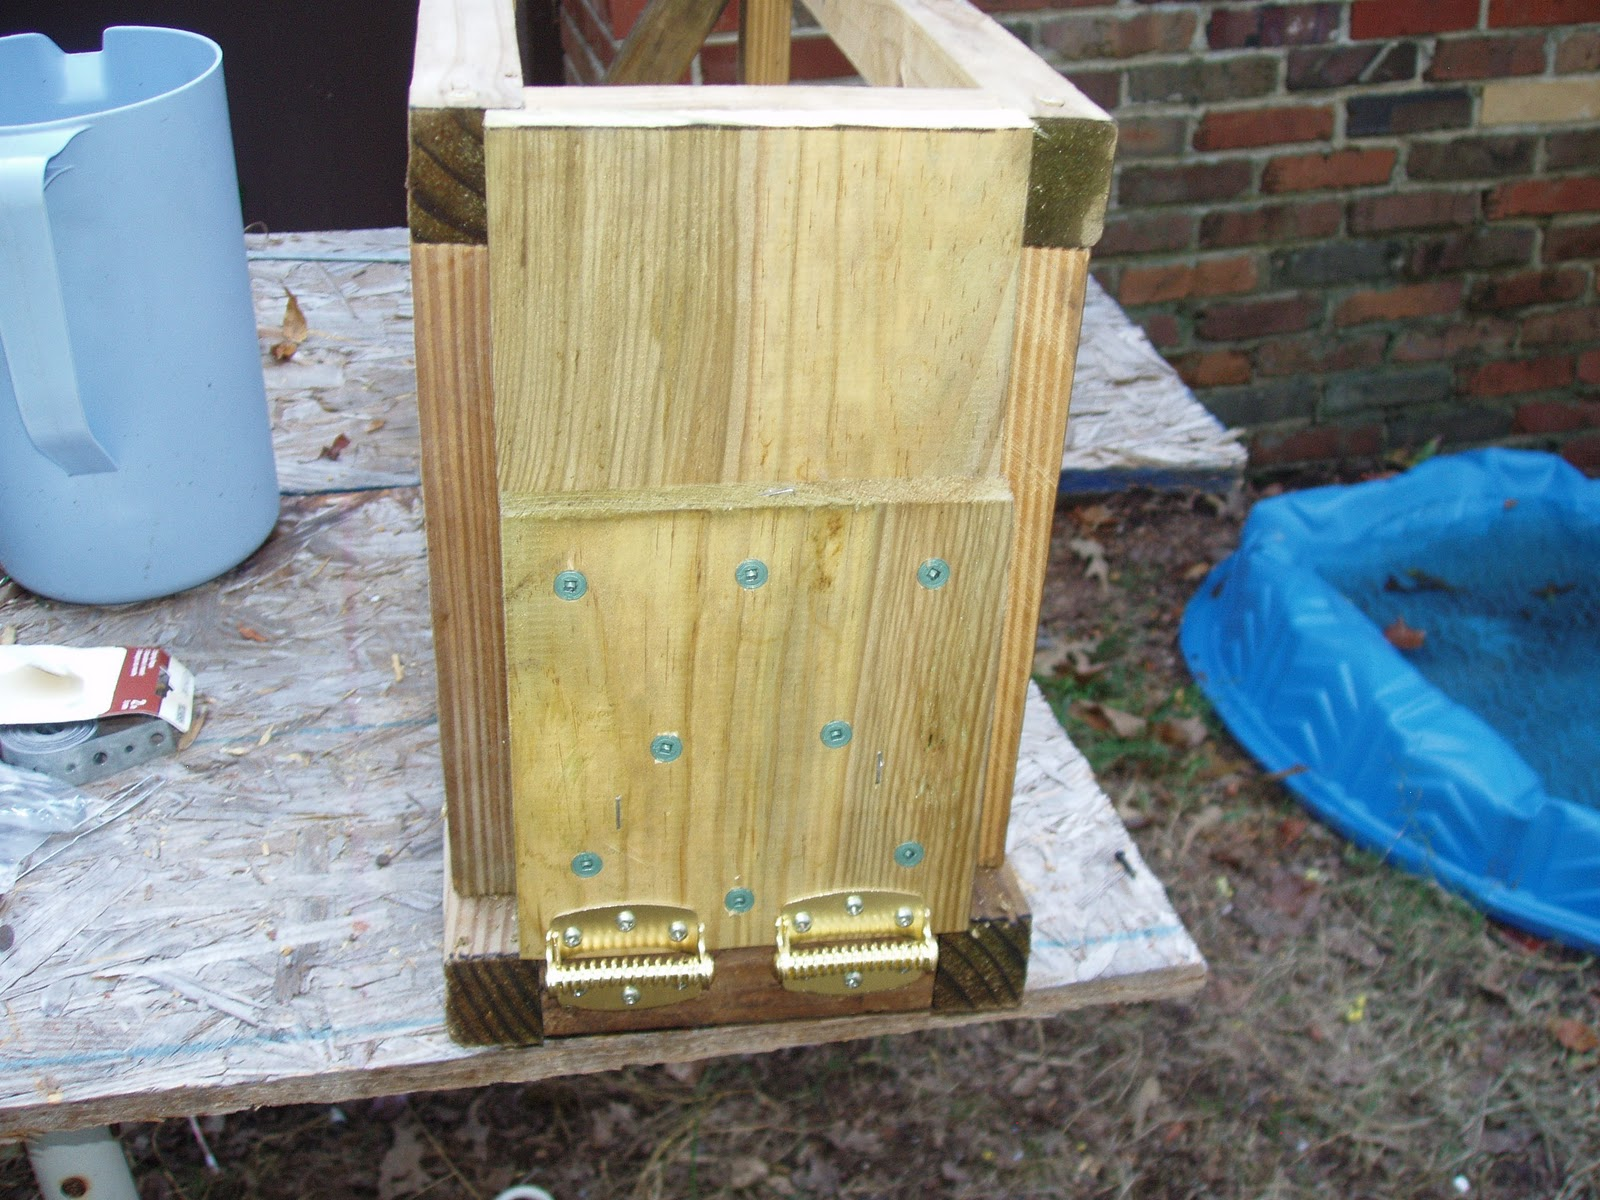 Squirrel Traps Homemade http://faszination-is-deko.de/29/homemade-humane-squirrel-traps